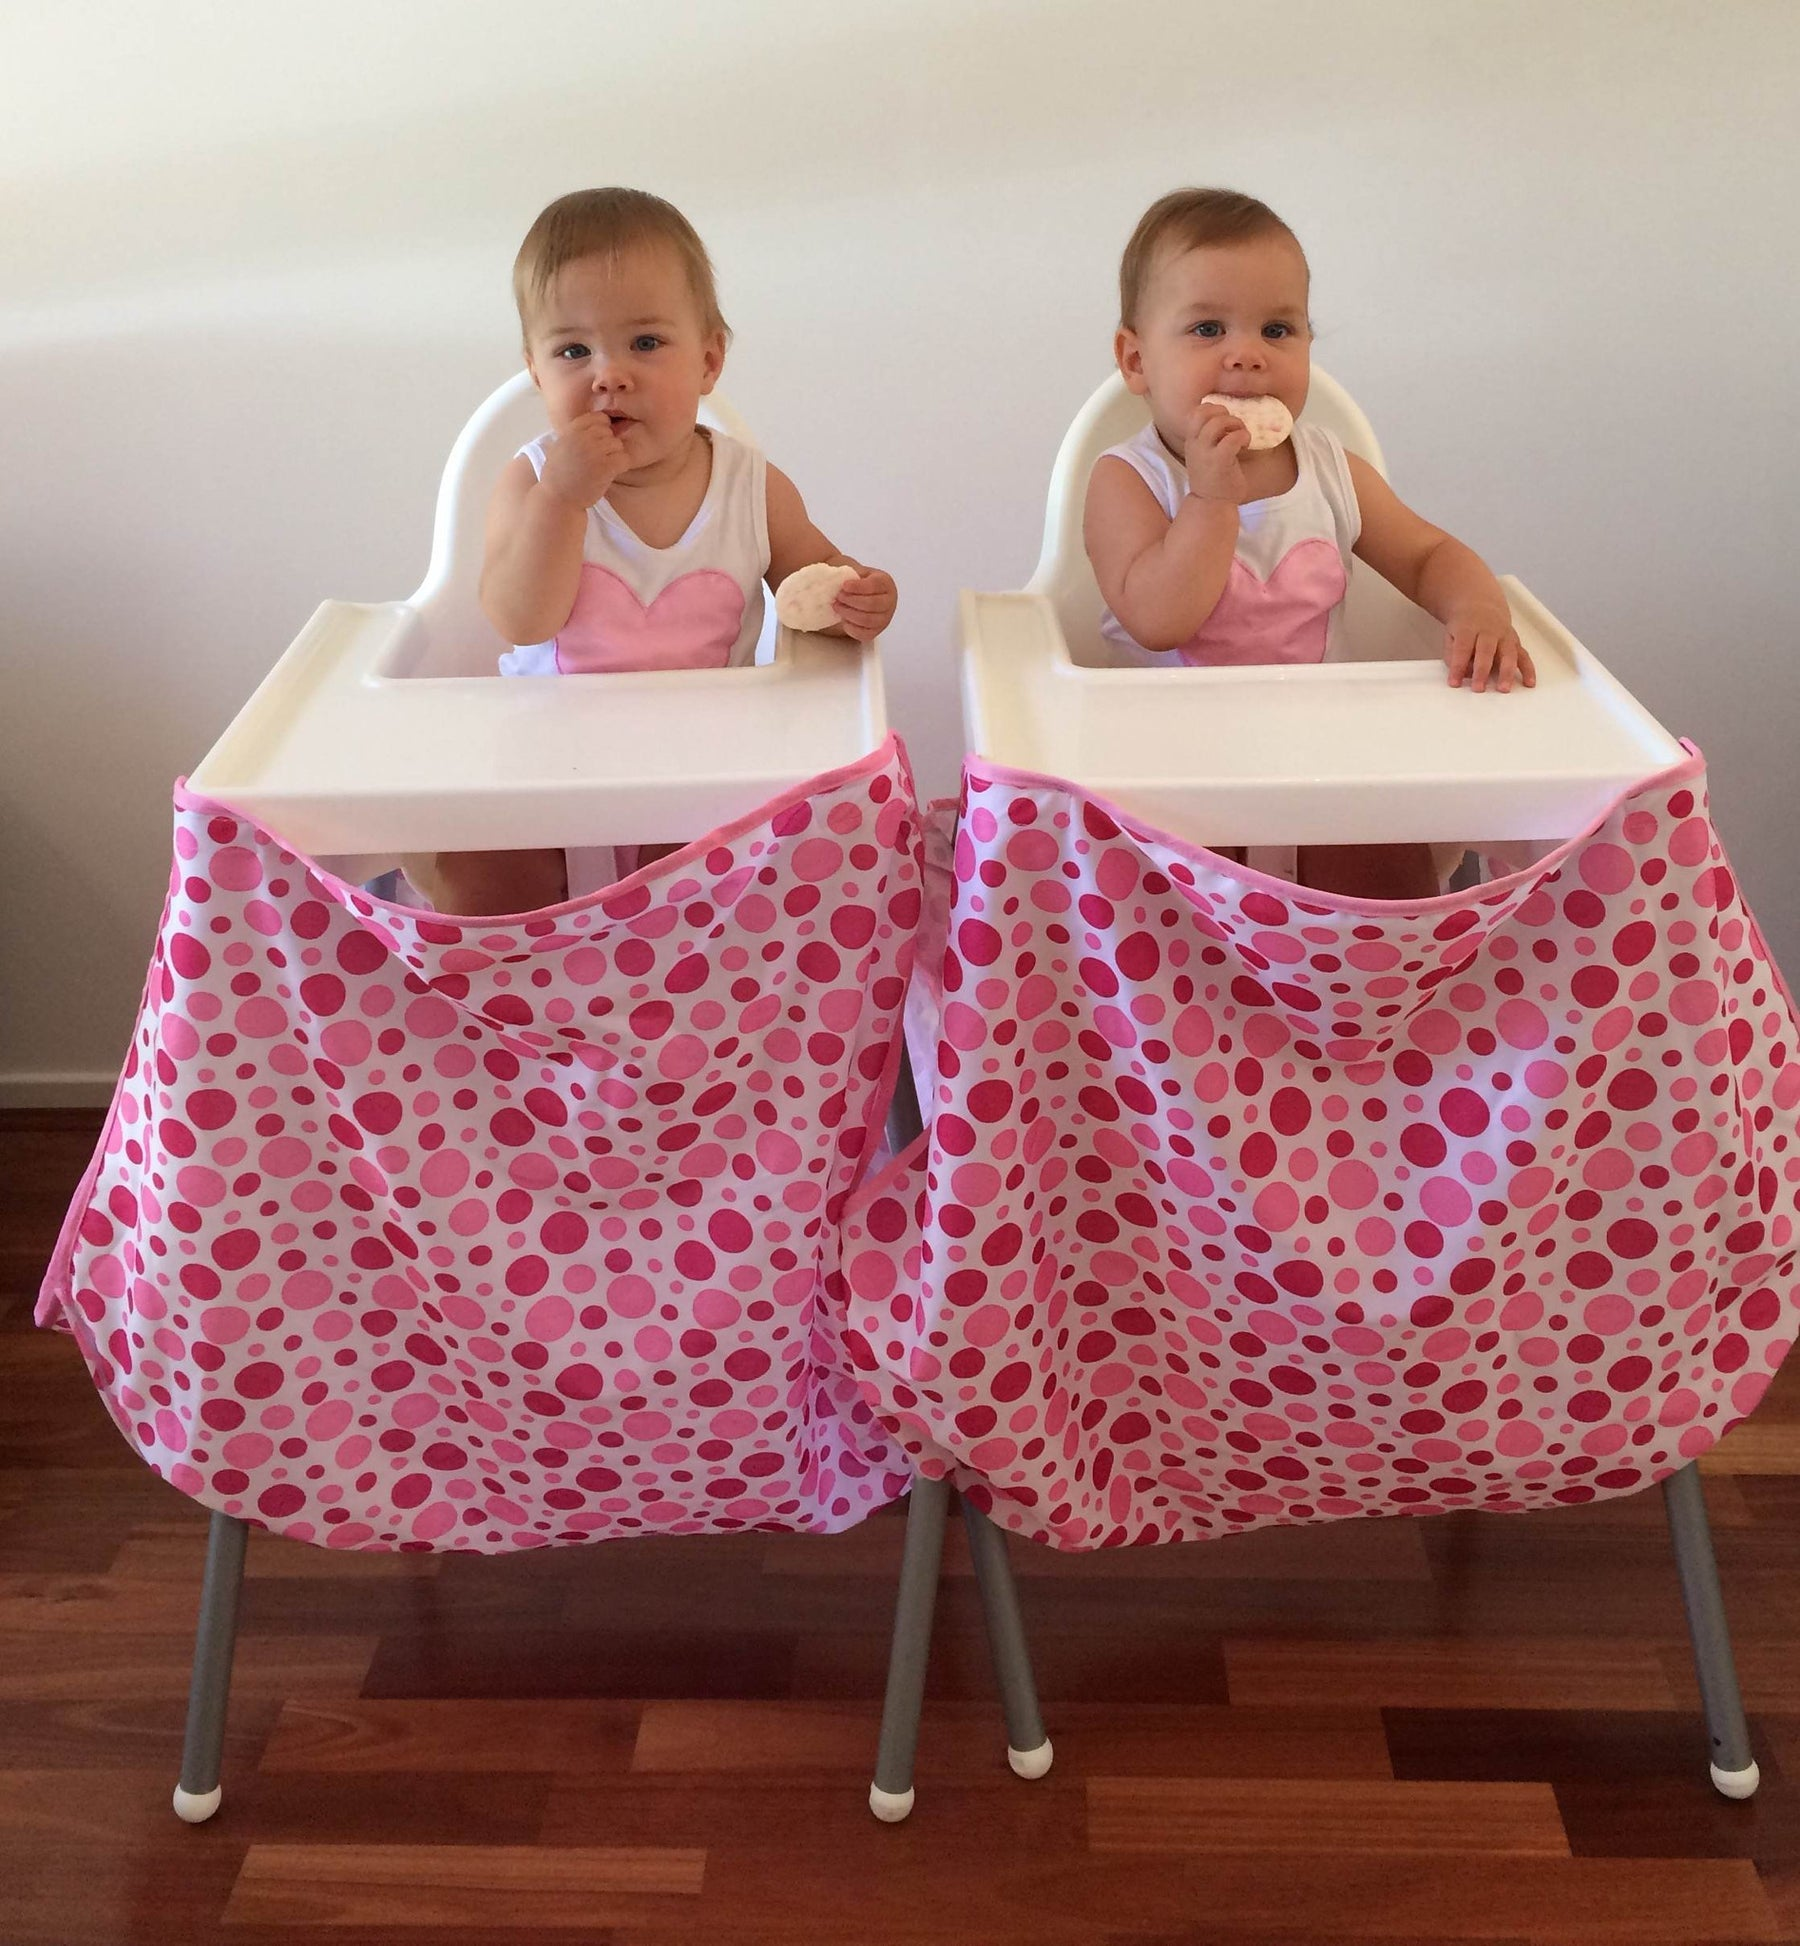 Mumma's Little Helpers Food Catcher Review